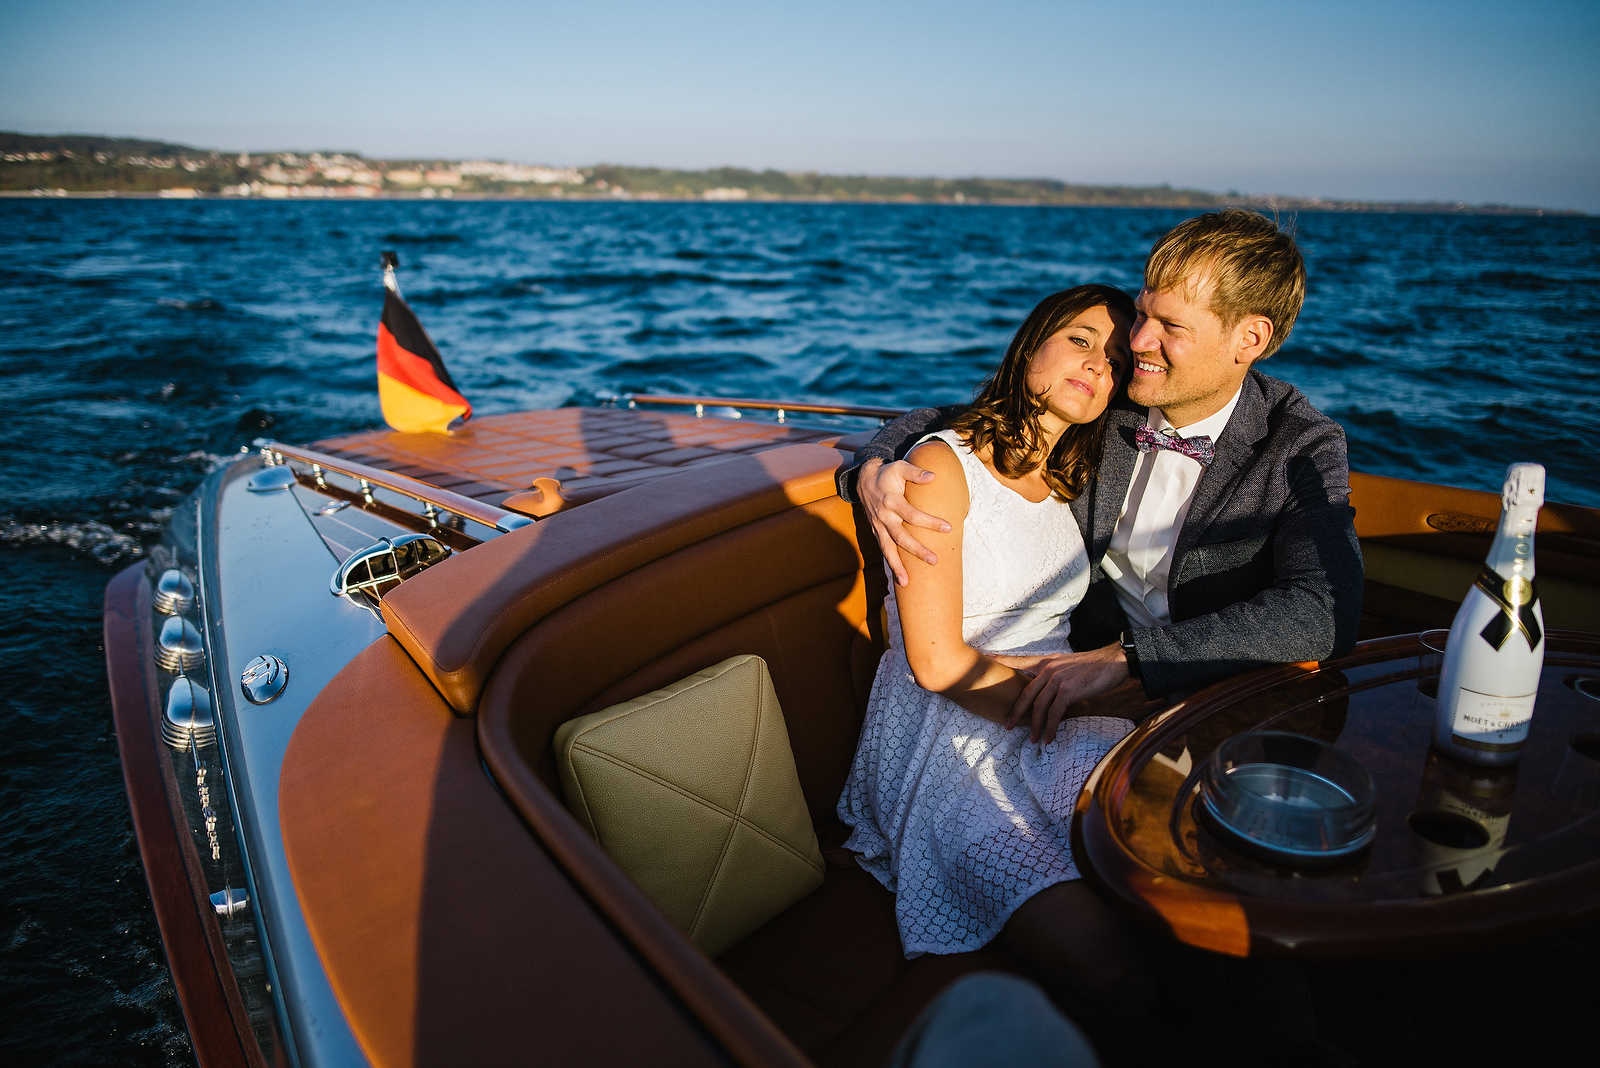 Fotograf Konstanz - Classic Boat Pegiva Shooting Bodensee Hochzeit Erlebnis EFP 39 - Experience a Pegiva boat shooting on Lake Constance  - 5 -